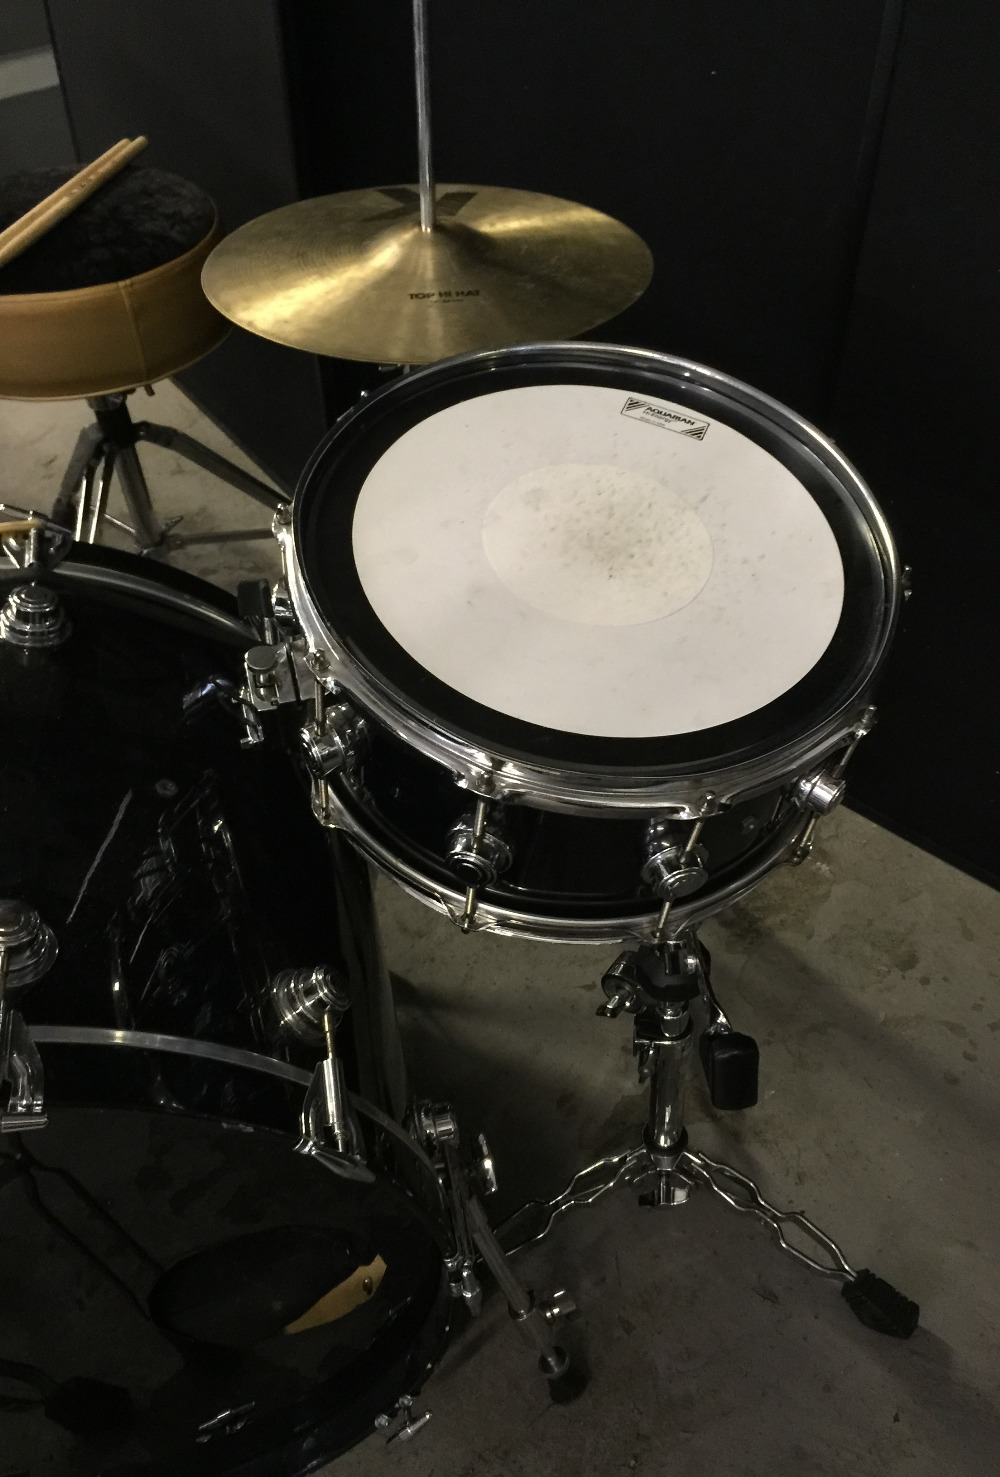 MOTORHEAD & PHILTHY ANIMAL - a DW Drum Workshop black speckled drum kit from the estate of Phil - Image 7 of 10